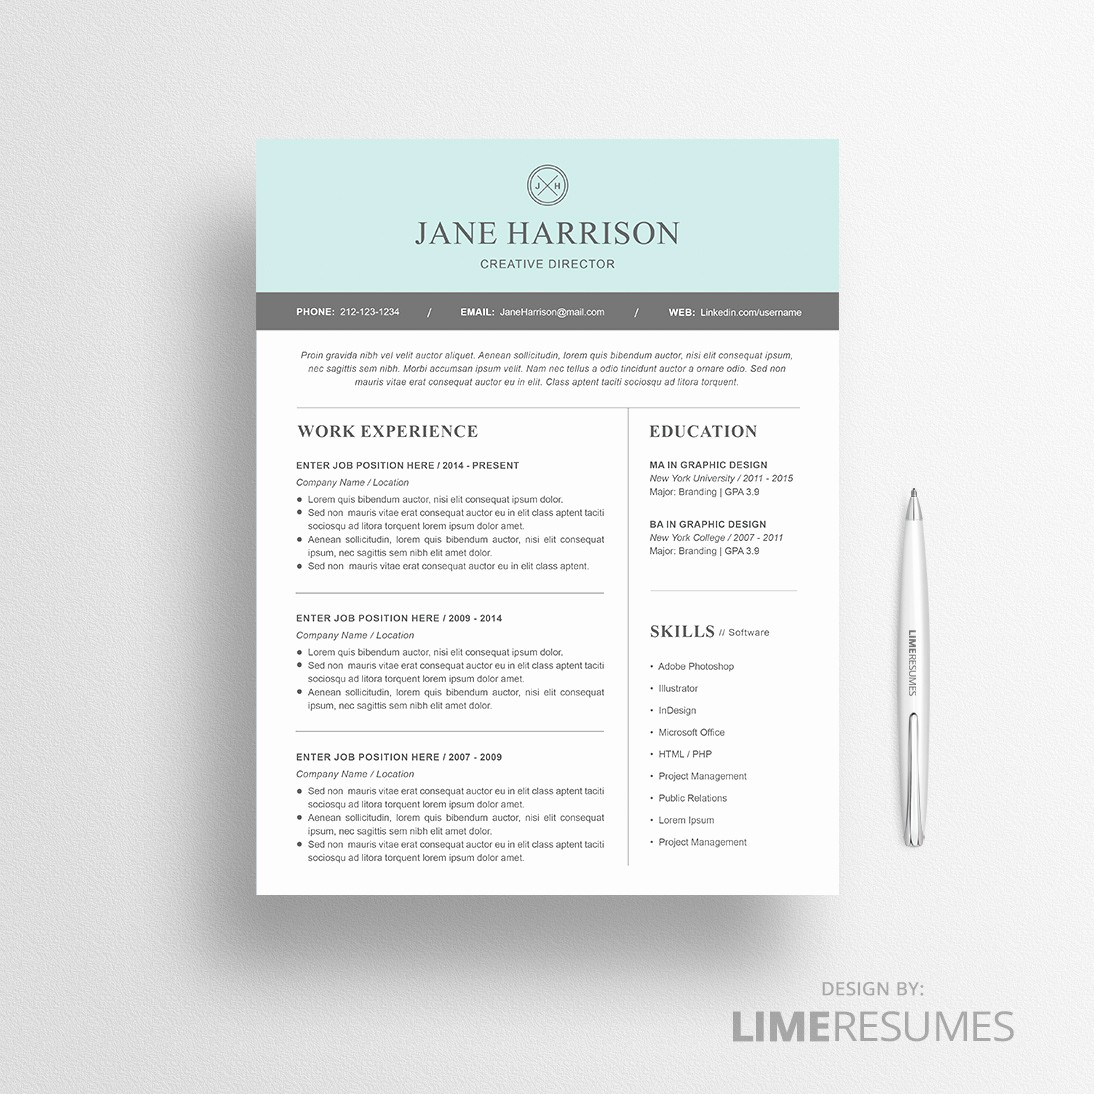 Best Ms Word Resume Templates Inspirational Modern Resume Template for Microsoft Word Limeresumes